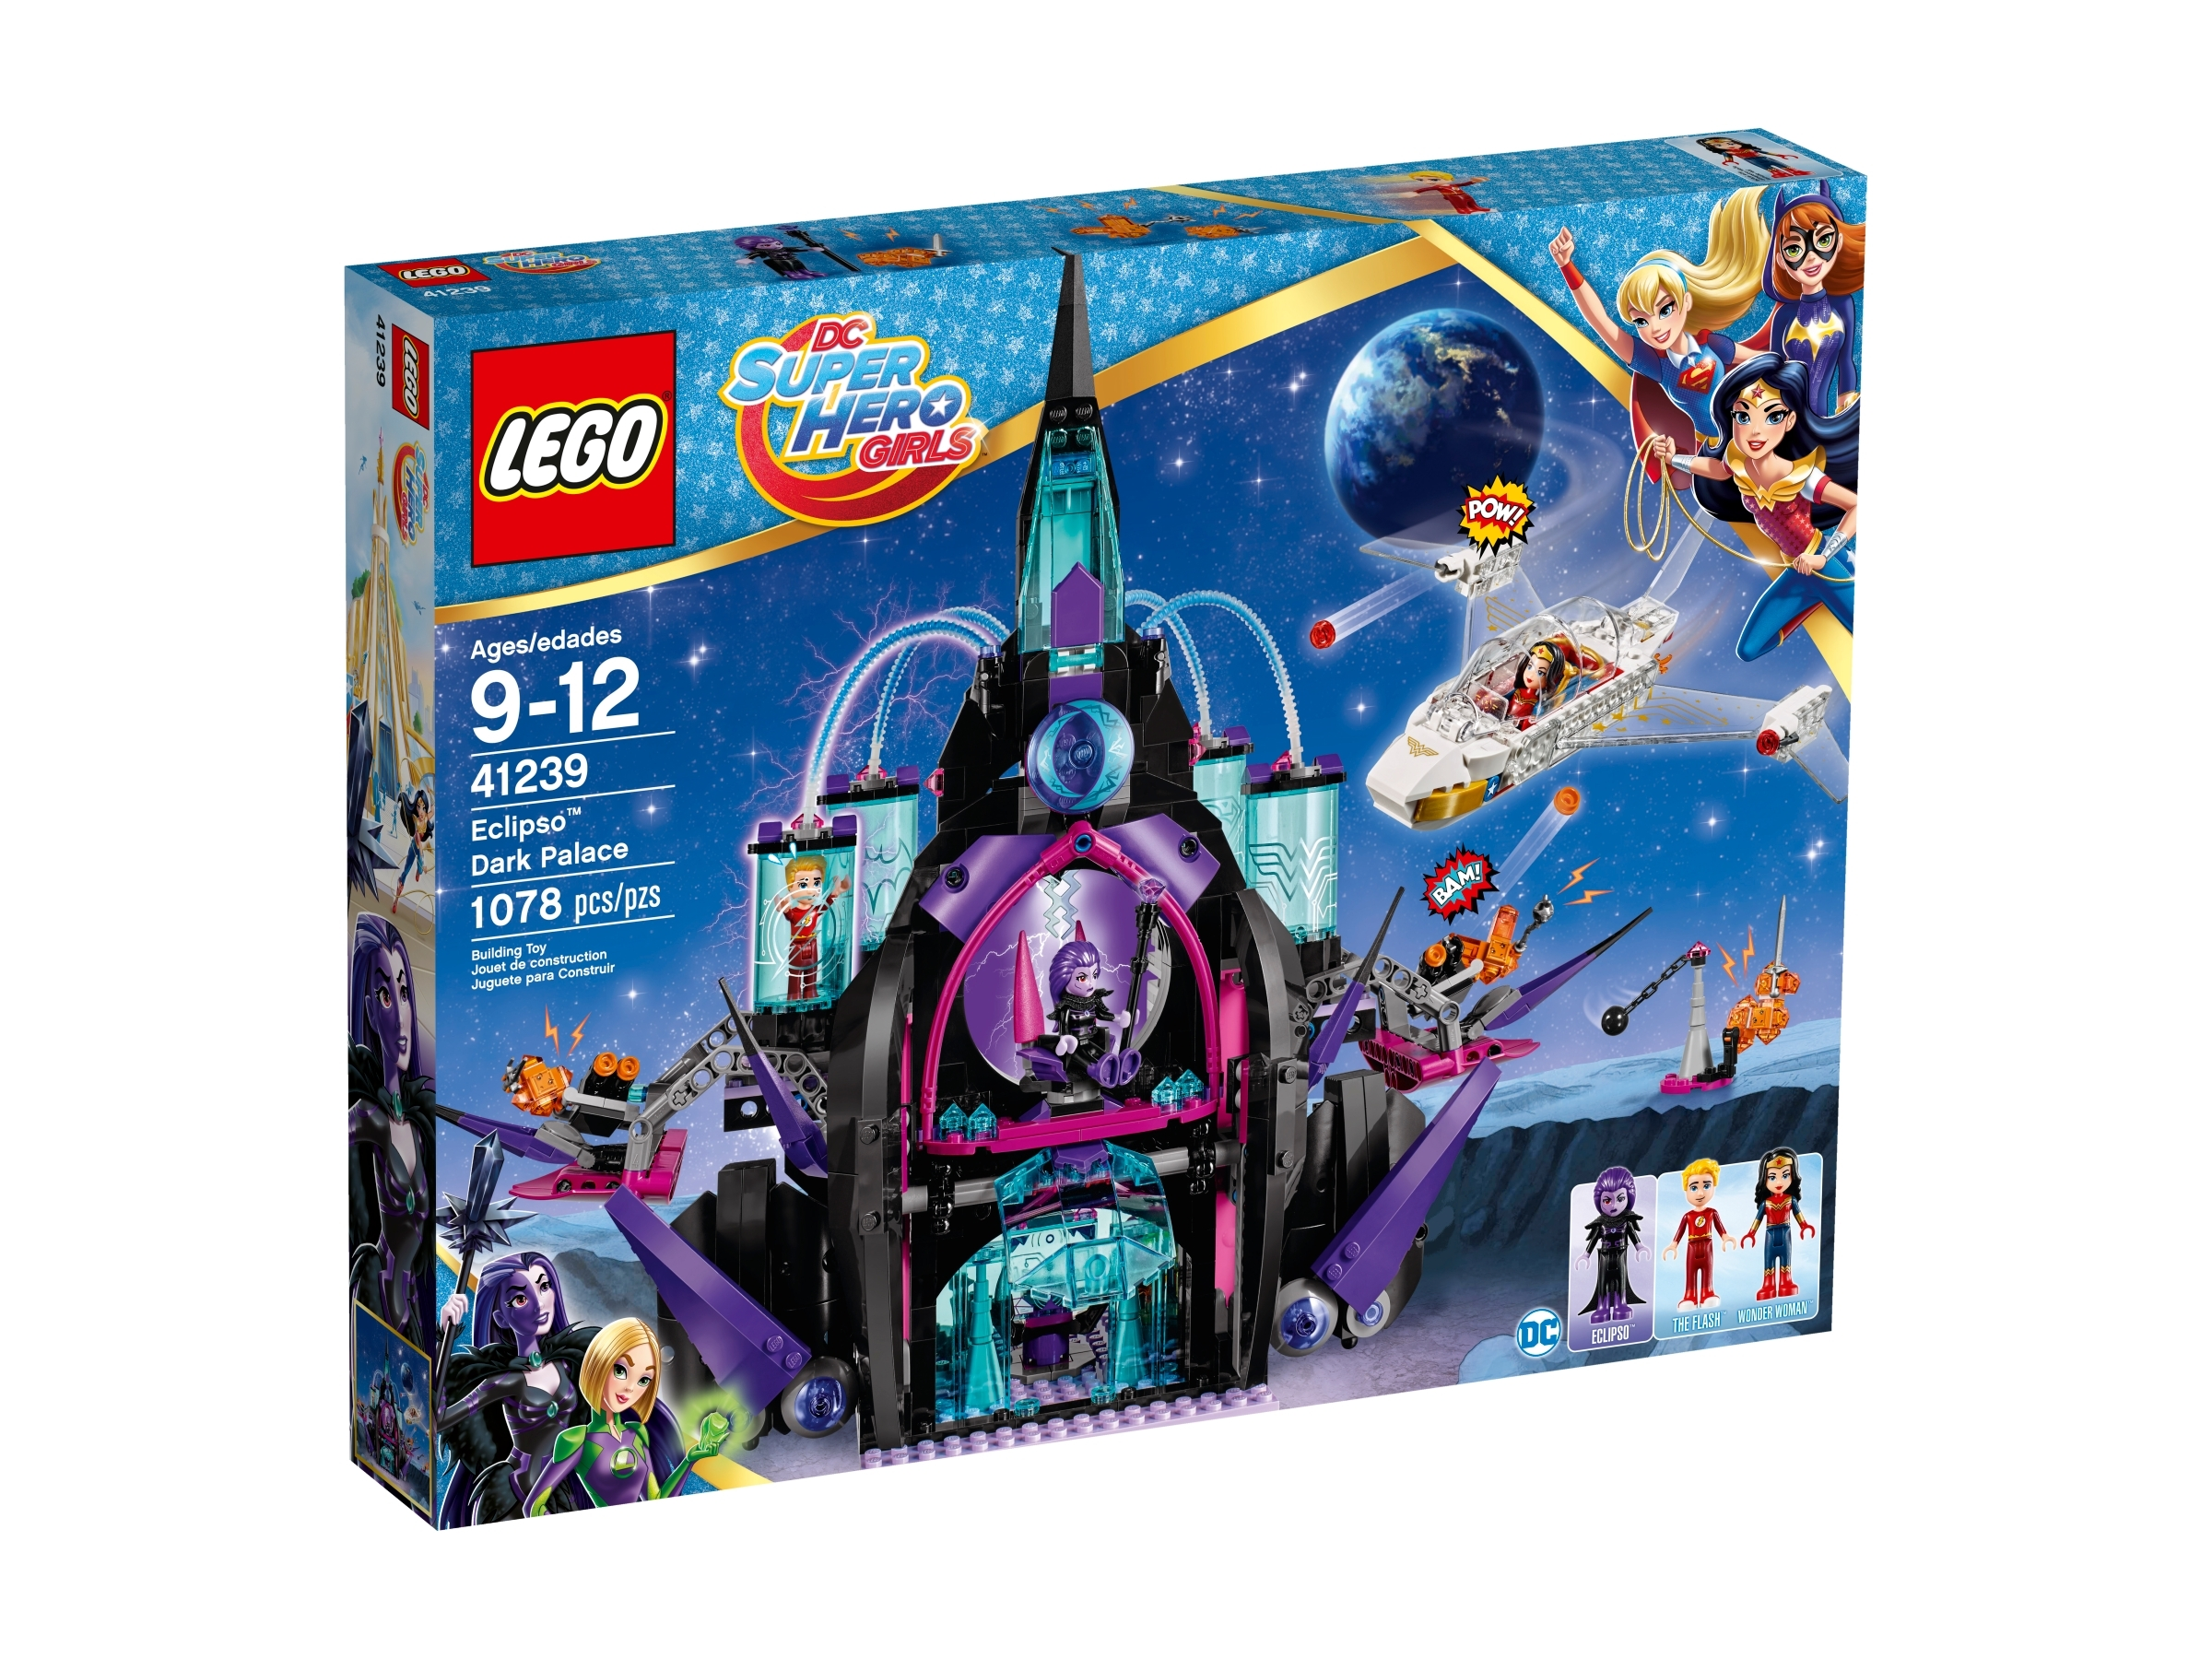 Lego Eclipso 41239 DC Super Hero Girls Minifigure